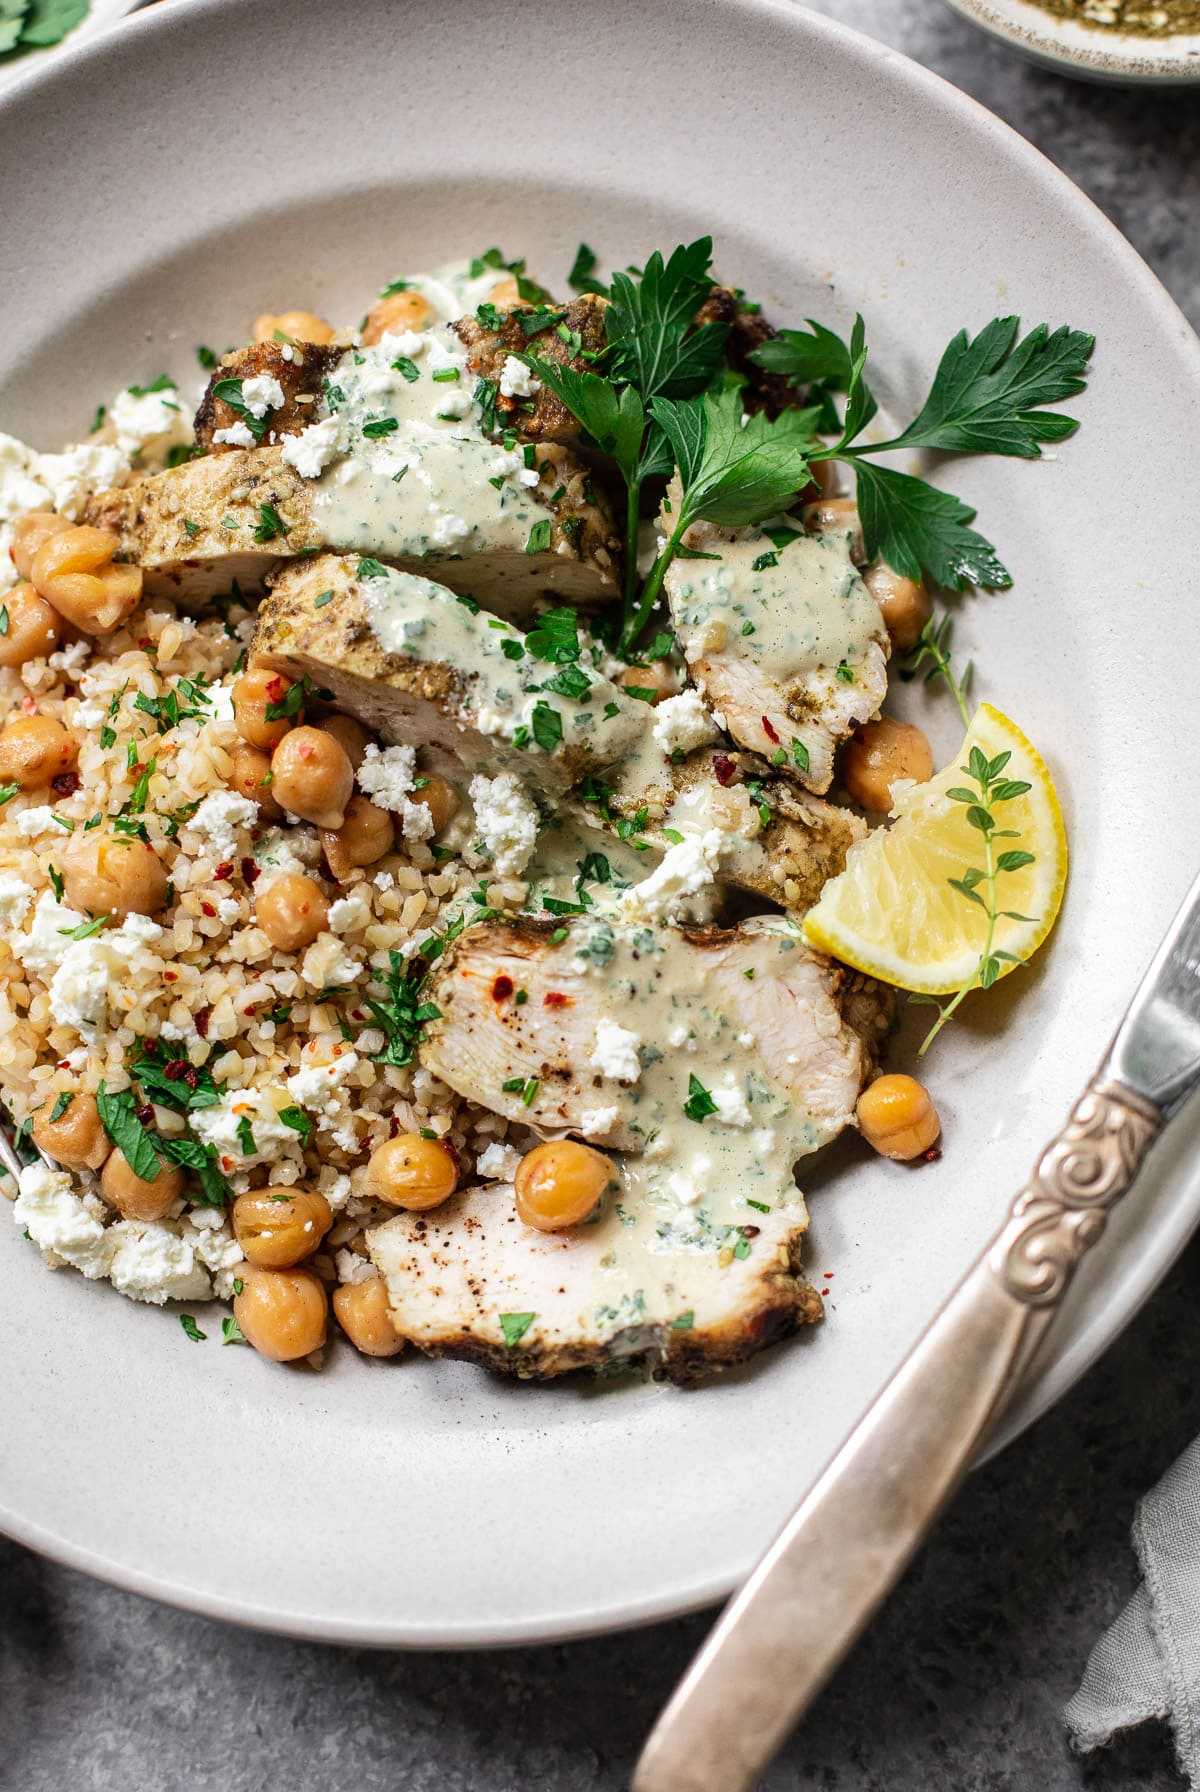 Lemon Chicken with Middle Eastern Za'atar, Fried Chickpeas and Herb Tahini